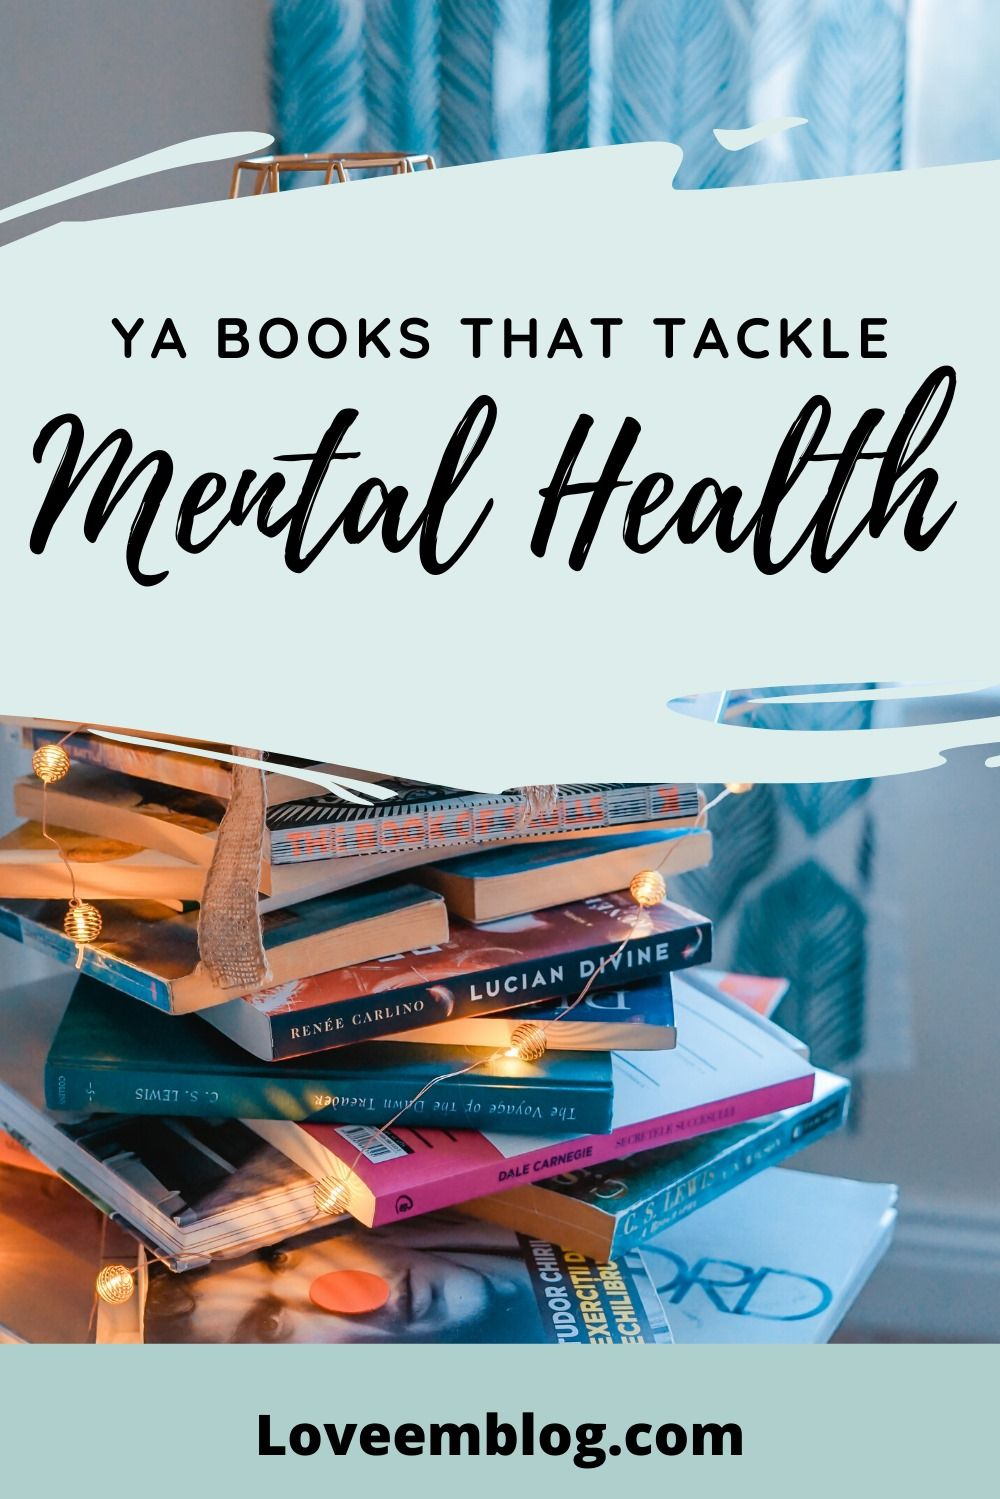 If you're looking for your next book to read, here are 6 young adult books that changed the way I think. They all cover mental health in different ways too.  #mentalhealth #readinglist #YAbooks #youngadukt #bookideas #booklist